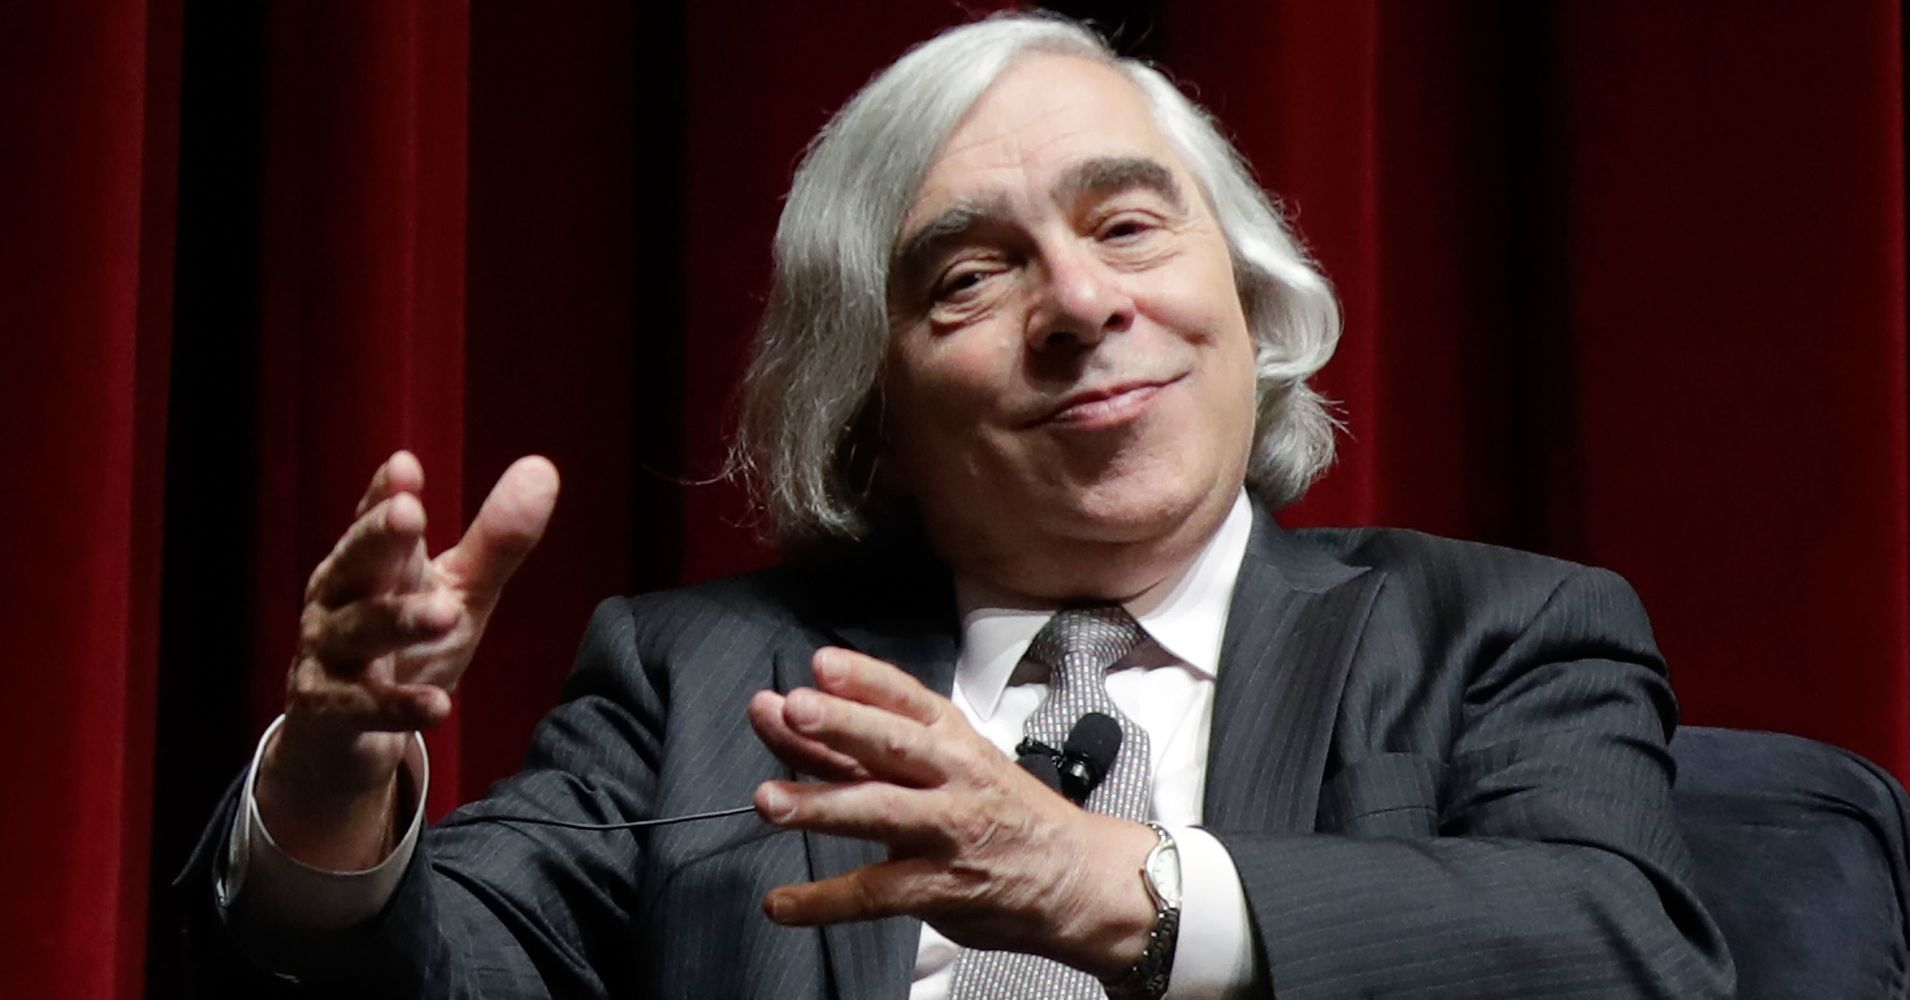 The U.S. Under-Invests in Energy Innovation Asserts Former Energy Secretary Ernest Moniz